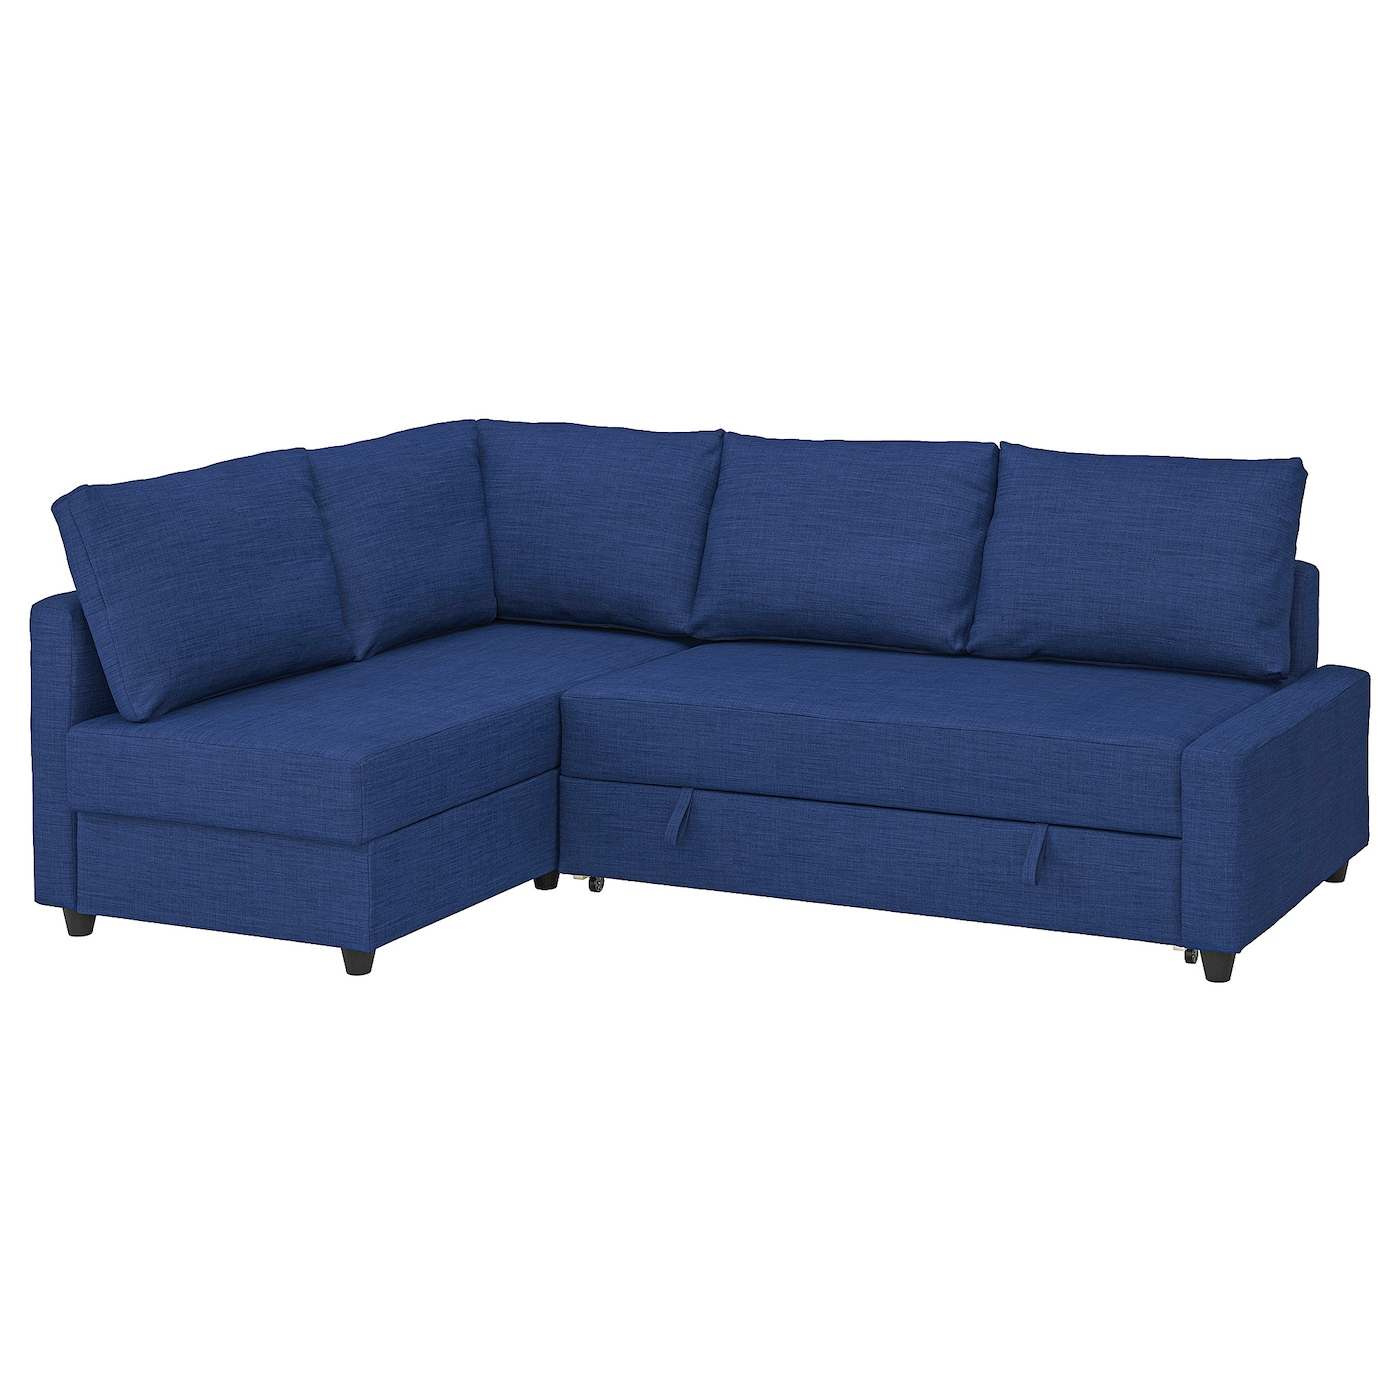 Picture of: Friheten Corner Sofa Bed 4 Seat With Extra Back Cushions Skiftebo Blue Ikea